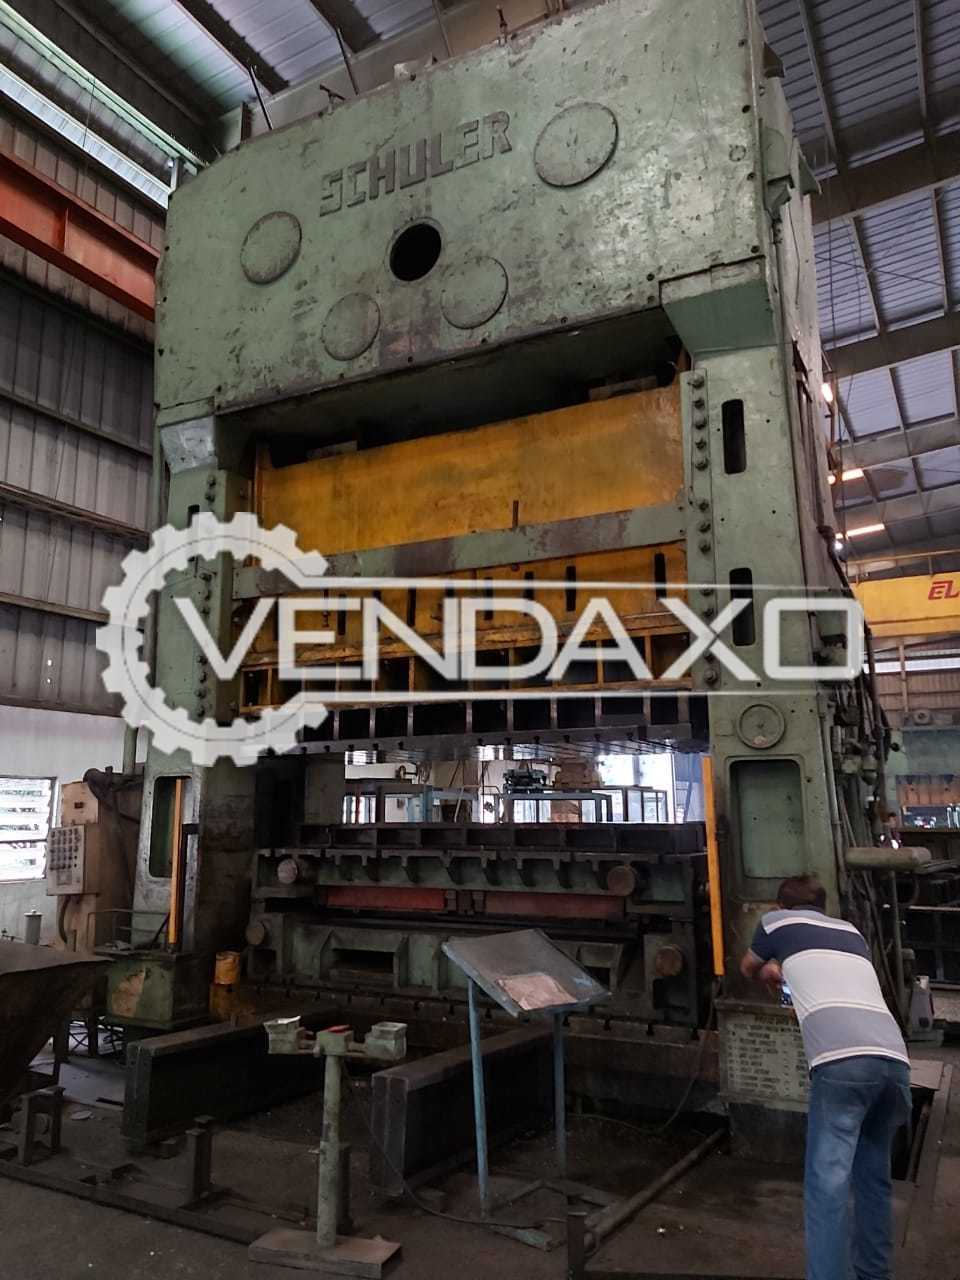 Schuler Make Hydraulic Press Machine - 1100 Ton